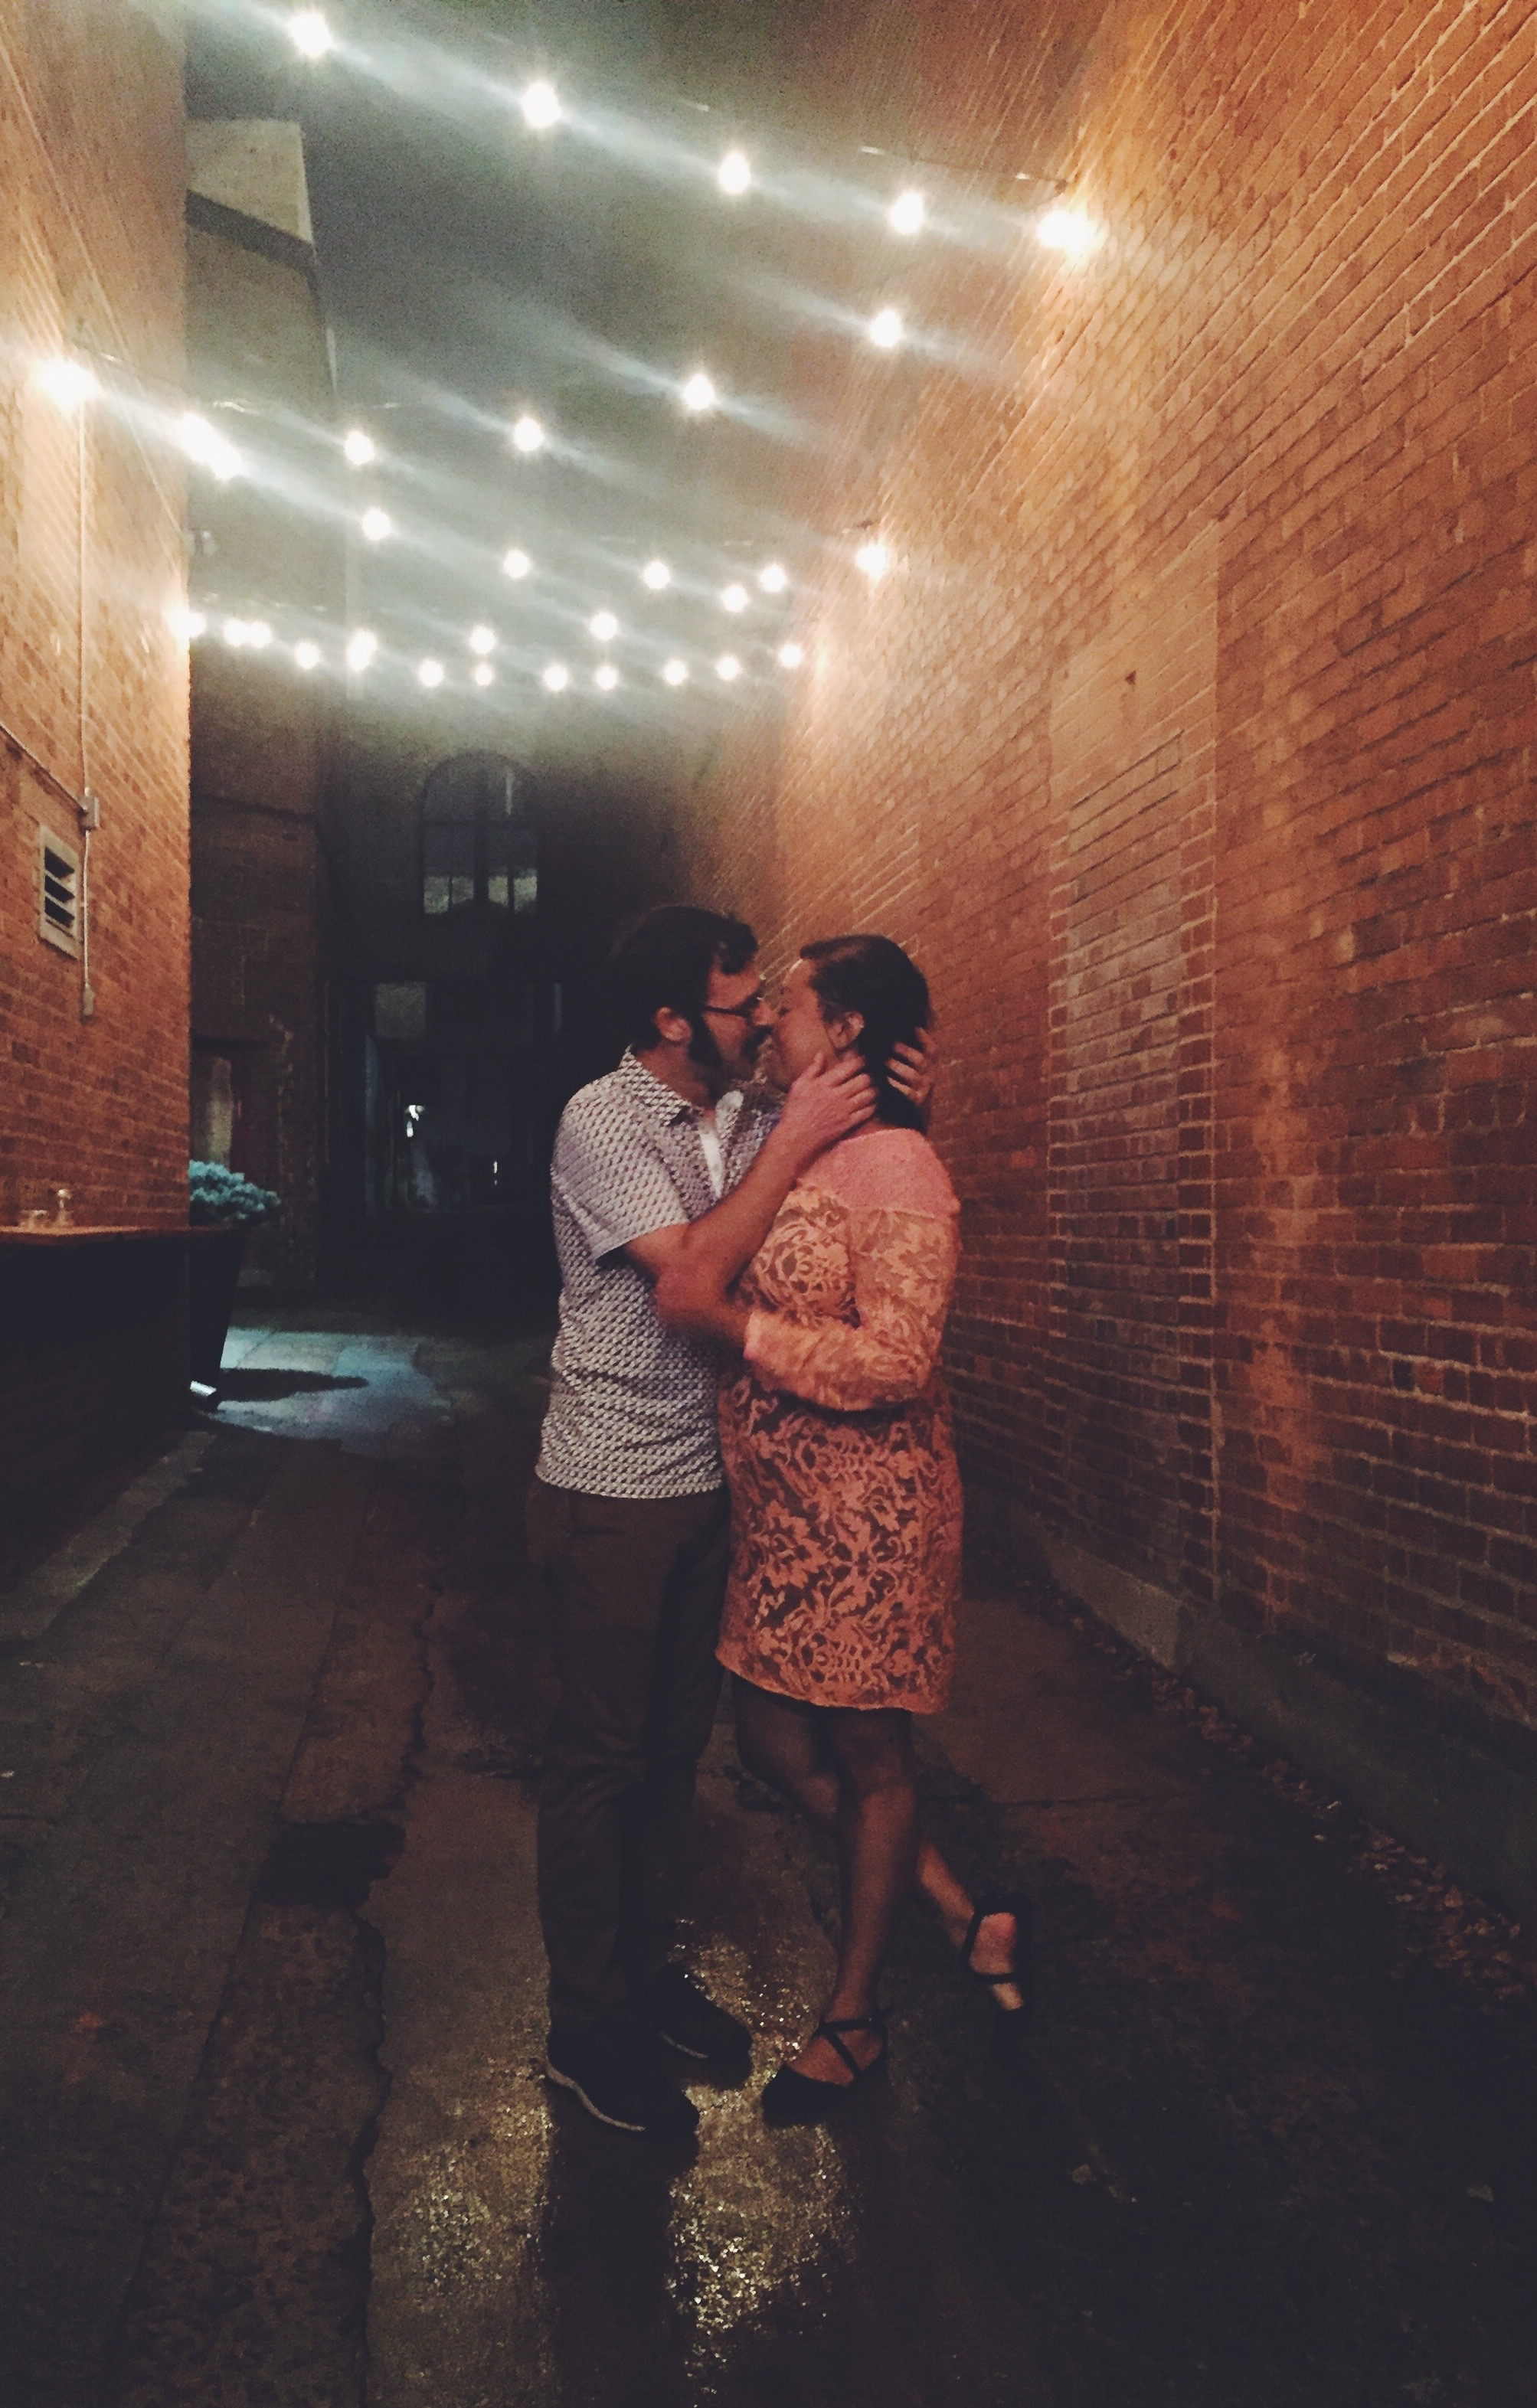 """HOW WE MET - Brian and I circled each other for years. He likely served me coffee at Caffé Driade when I was in undergrad, we lived within half a mile of each other in Chapel Hill, and shopped at the same grocery store.In 2015 I started going to yoga at The Durham Hotel, thanks to Jessica Collette of La Vita Yoga. I had sworn off setting foot in the hotel for various reasons, but the prospect of $10 yoga was too good. So I went and sporadically ate breakfast in the coffee shop downstairs, using the big open space to write in my journal and chuckling at being in a fancy hotel in sweaty, holey yoga outfits.In September of 2016 I was re-entering my practice after a very painful year, both emotionally and physically. I had stopped into the hotel for a tea after a slow day of work in my office. Brian, the barista whom I always found nice (and now suddenly seemed very attractive) offered me a second steep. It wasn't out of the ordinary, because everyone there is always kind, and because I had """"SWORN OFF DATING FOREVER."""" Yes, I'm a cliché. He added me on facebook that evening. I noticed our mutual friends were folks dear to me, that he loved karaoke, and yes, he was very attractive. Still, I didn't think much of it.Emboldened by goddess knows what (likely the burst of energy I get from celebrating Halloween), I began to flirt with Brian, drinking my beverages right at the bar instead of across the coffeeshop. I found him funny, kind and smart, and very unlike the mediocre men who were taking up too much of my time and all of my emotional labor. I found a way to get him to ask me out: I told him I was going to check out Discotoño play a set at Arcana. Brian took my """"in,"""" and offered to join me.Hours before this meeting I went to a friend's house to help another friend carve her first pumpkin. I take my responsibilities as Queen of Halloween very seriously, so I was running pretty late to Arcana. I messaged Brian to say that I was half an hour behind, not because I was tryin"""